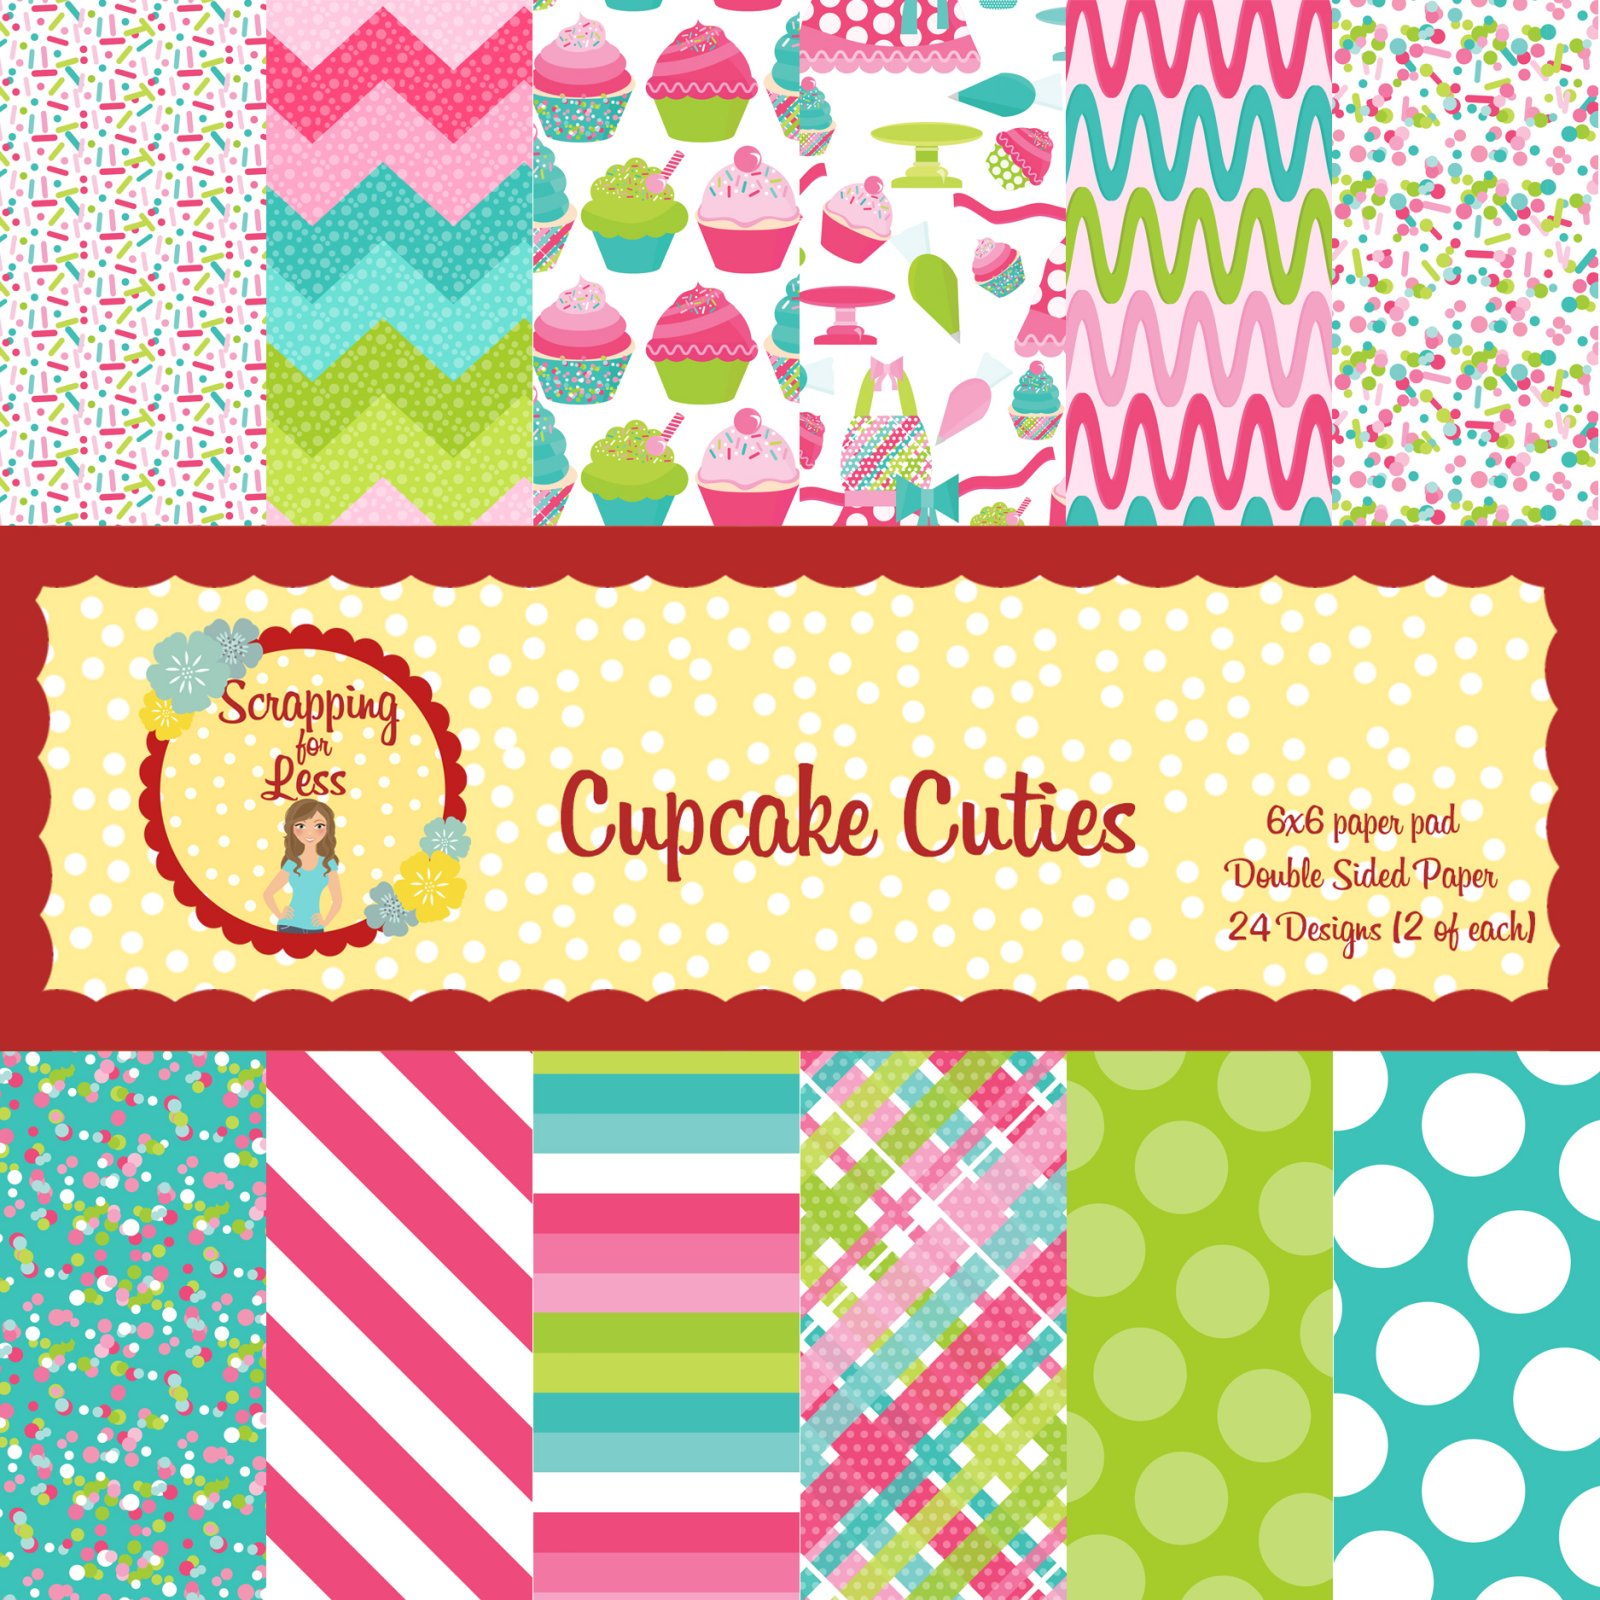 Scrapping for Less Cupcake Cuties 6x6 Paper Pad